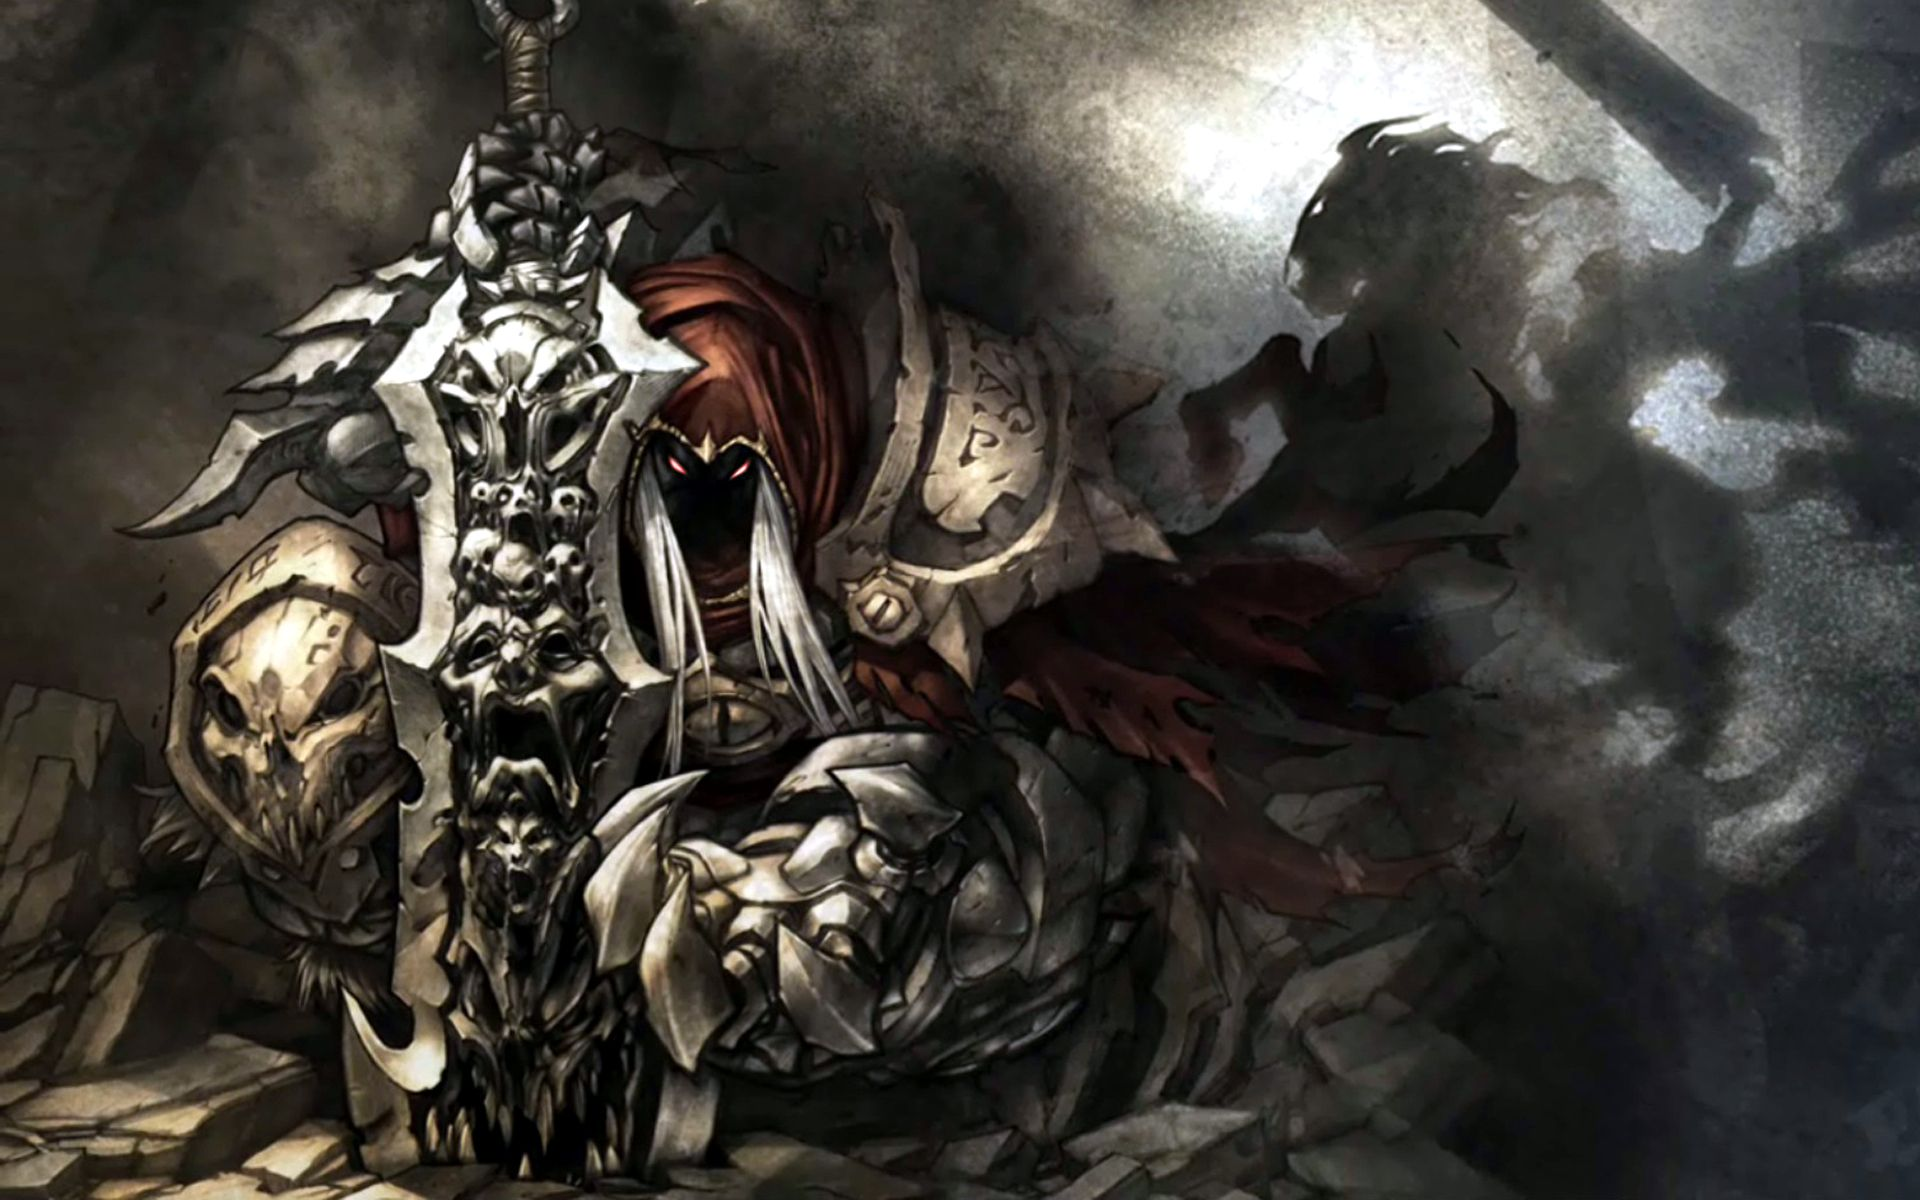 darksiders ii death lives hd desktop wallpaper widescreen high